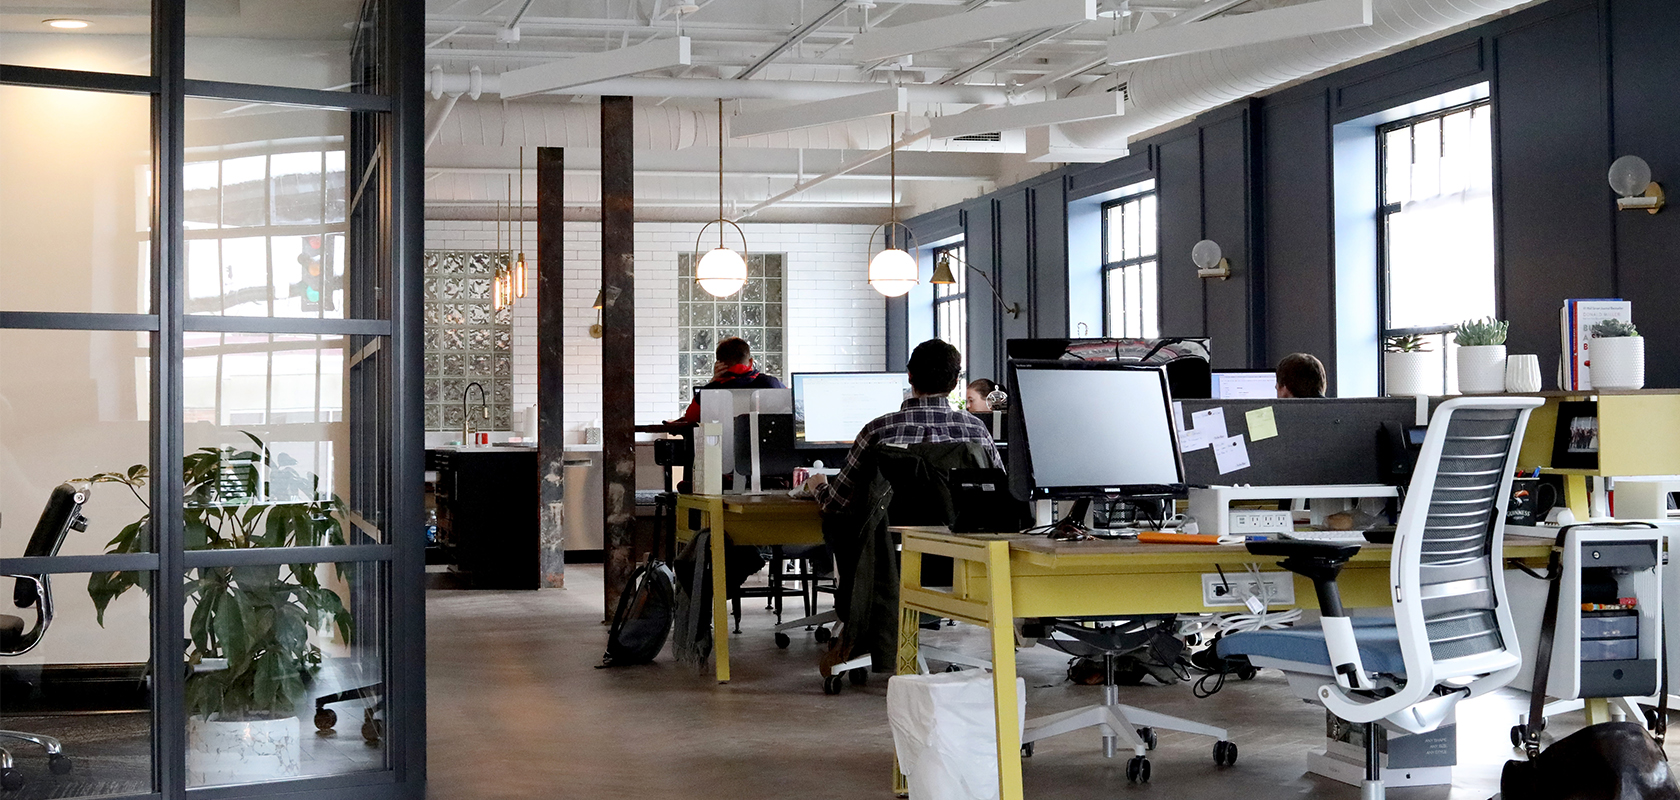 Modern office with open floor plan in industry style